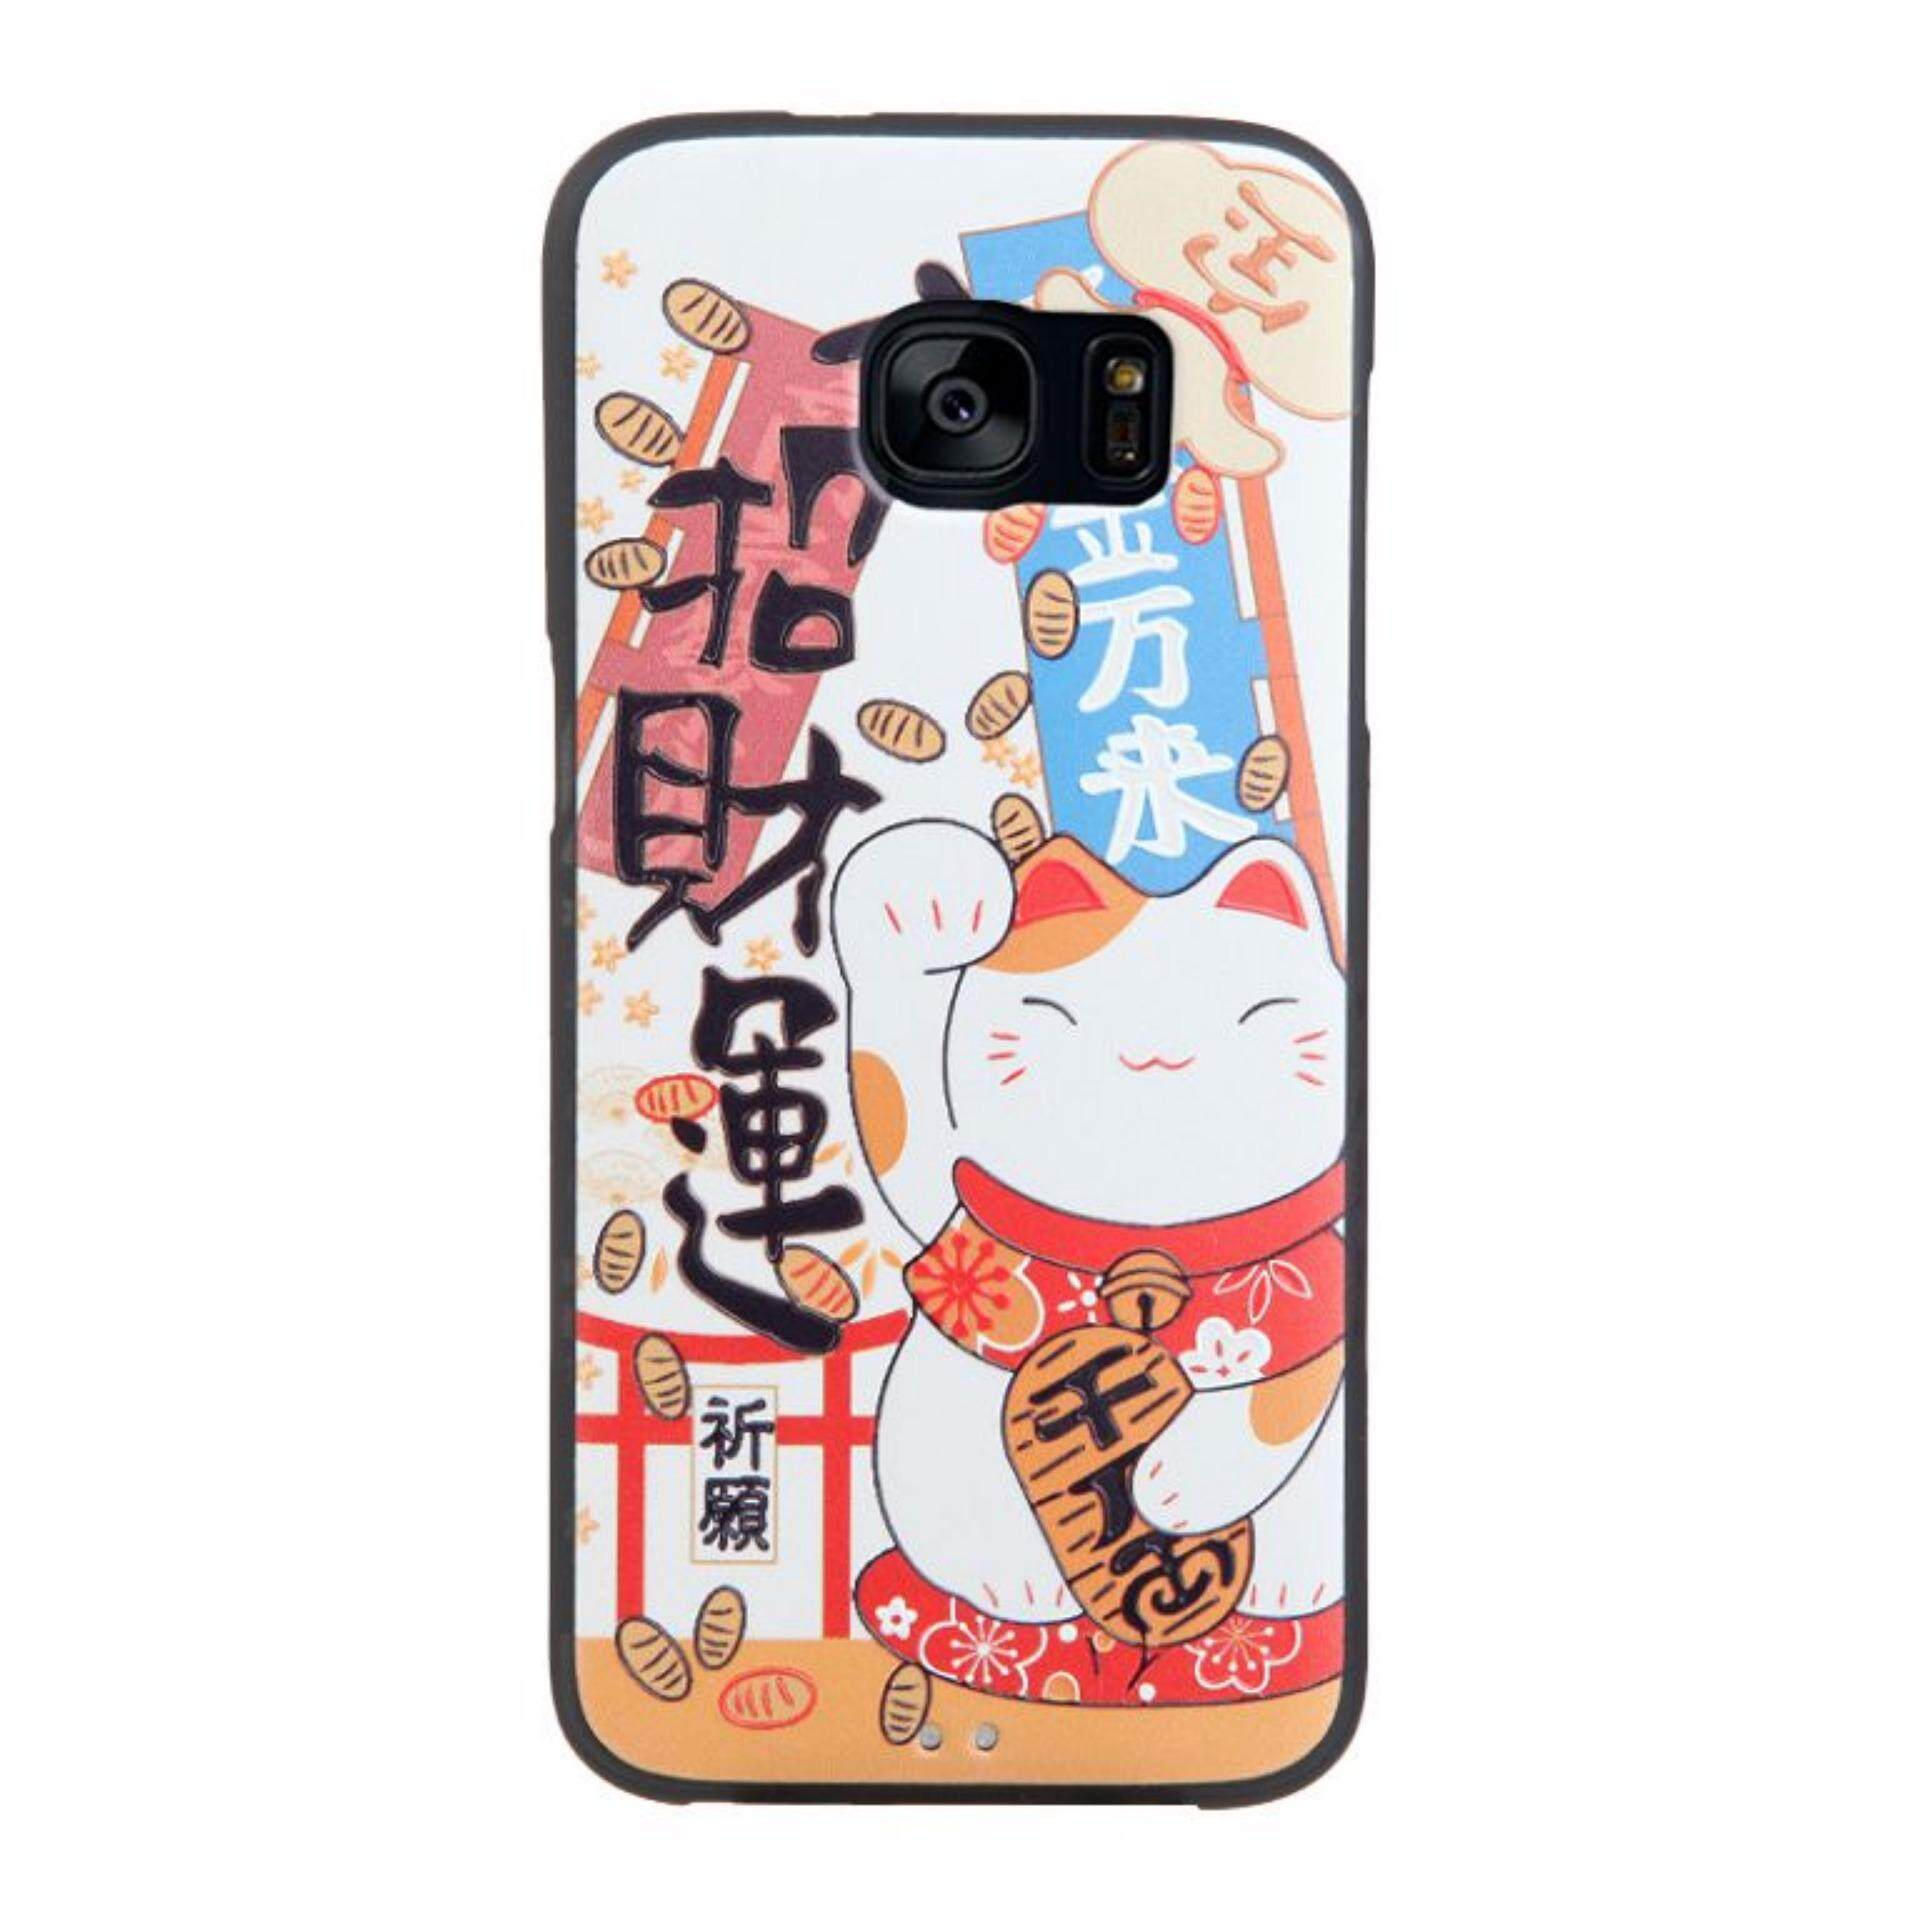 Soft TPU 3D Embossed Painting Cover Case For Samsung Galaxy S7 Edge(Lucky Cat)